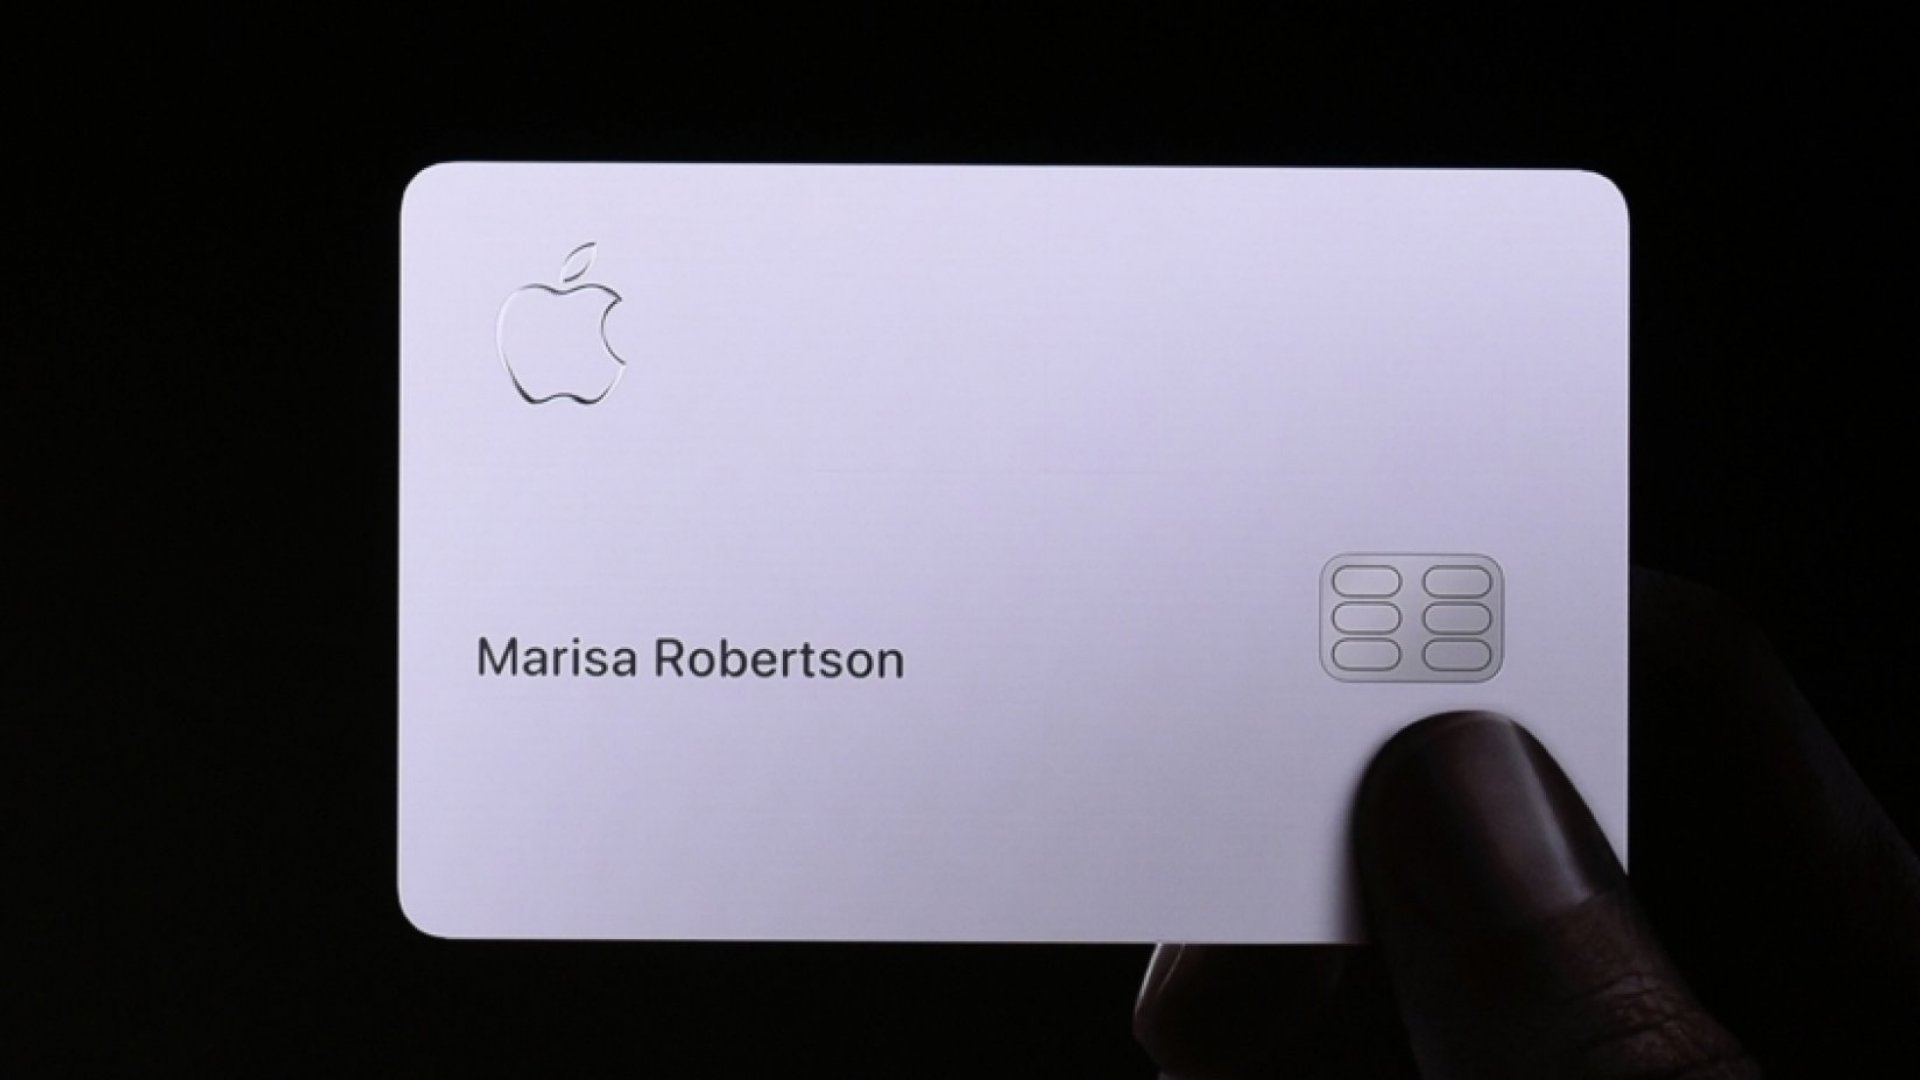 Apple Card Is Here: 14 Things You Should Know  Inc.com